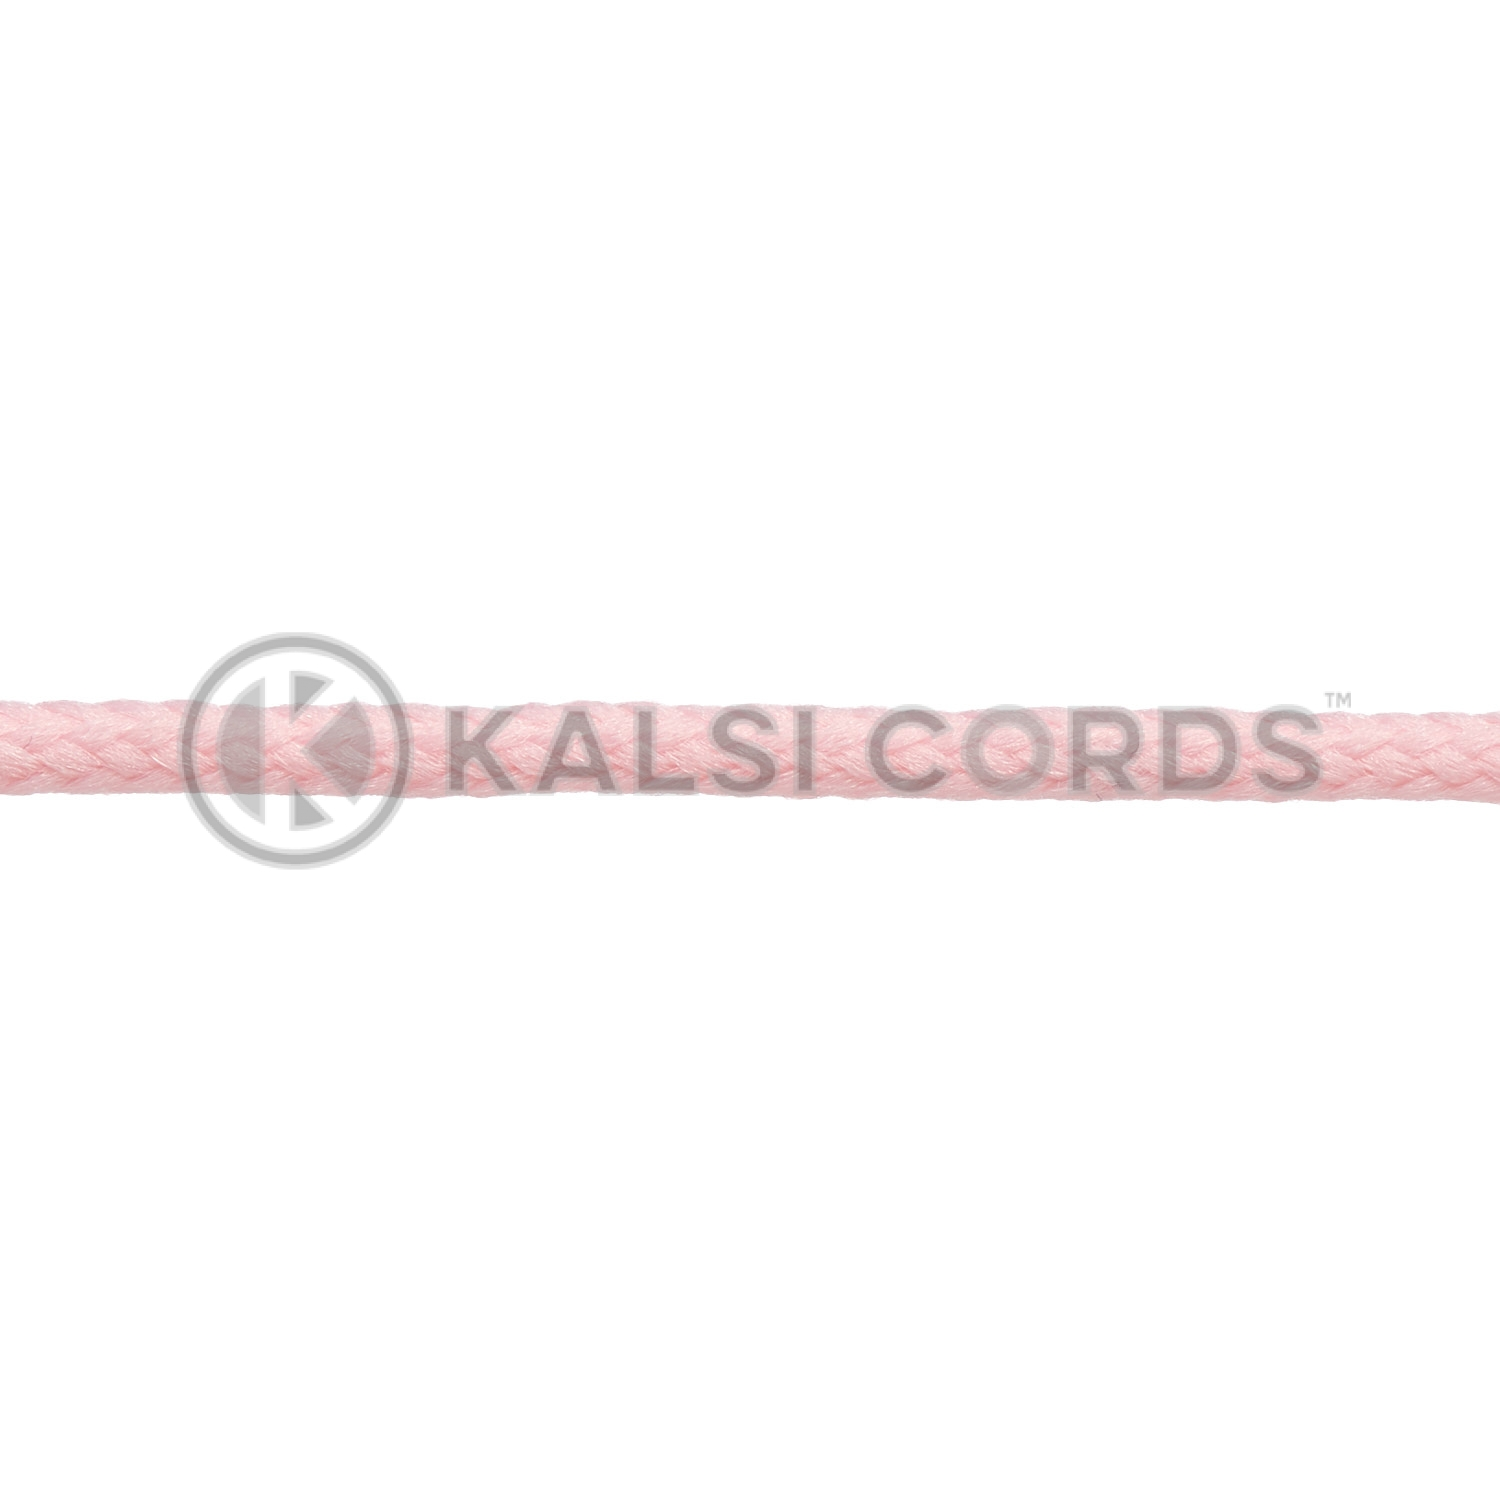 T460 2mm Thin Fine Round Cord Shoe Laces Baby Pink PG834 Kids Trainers Adults Brogue Formal Boots Kalsi Cords